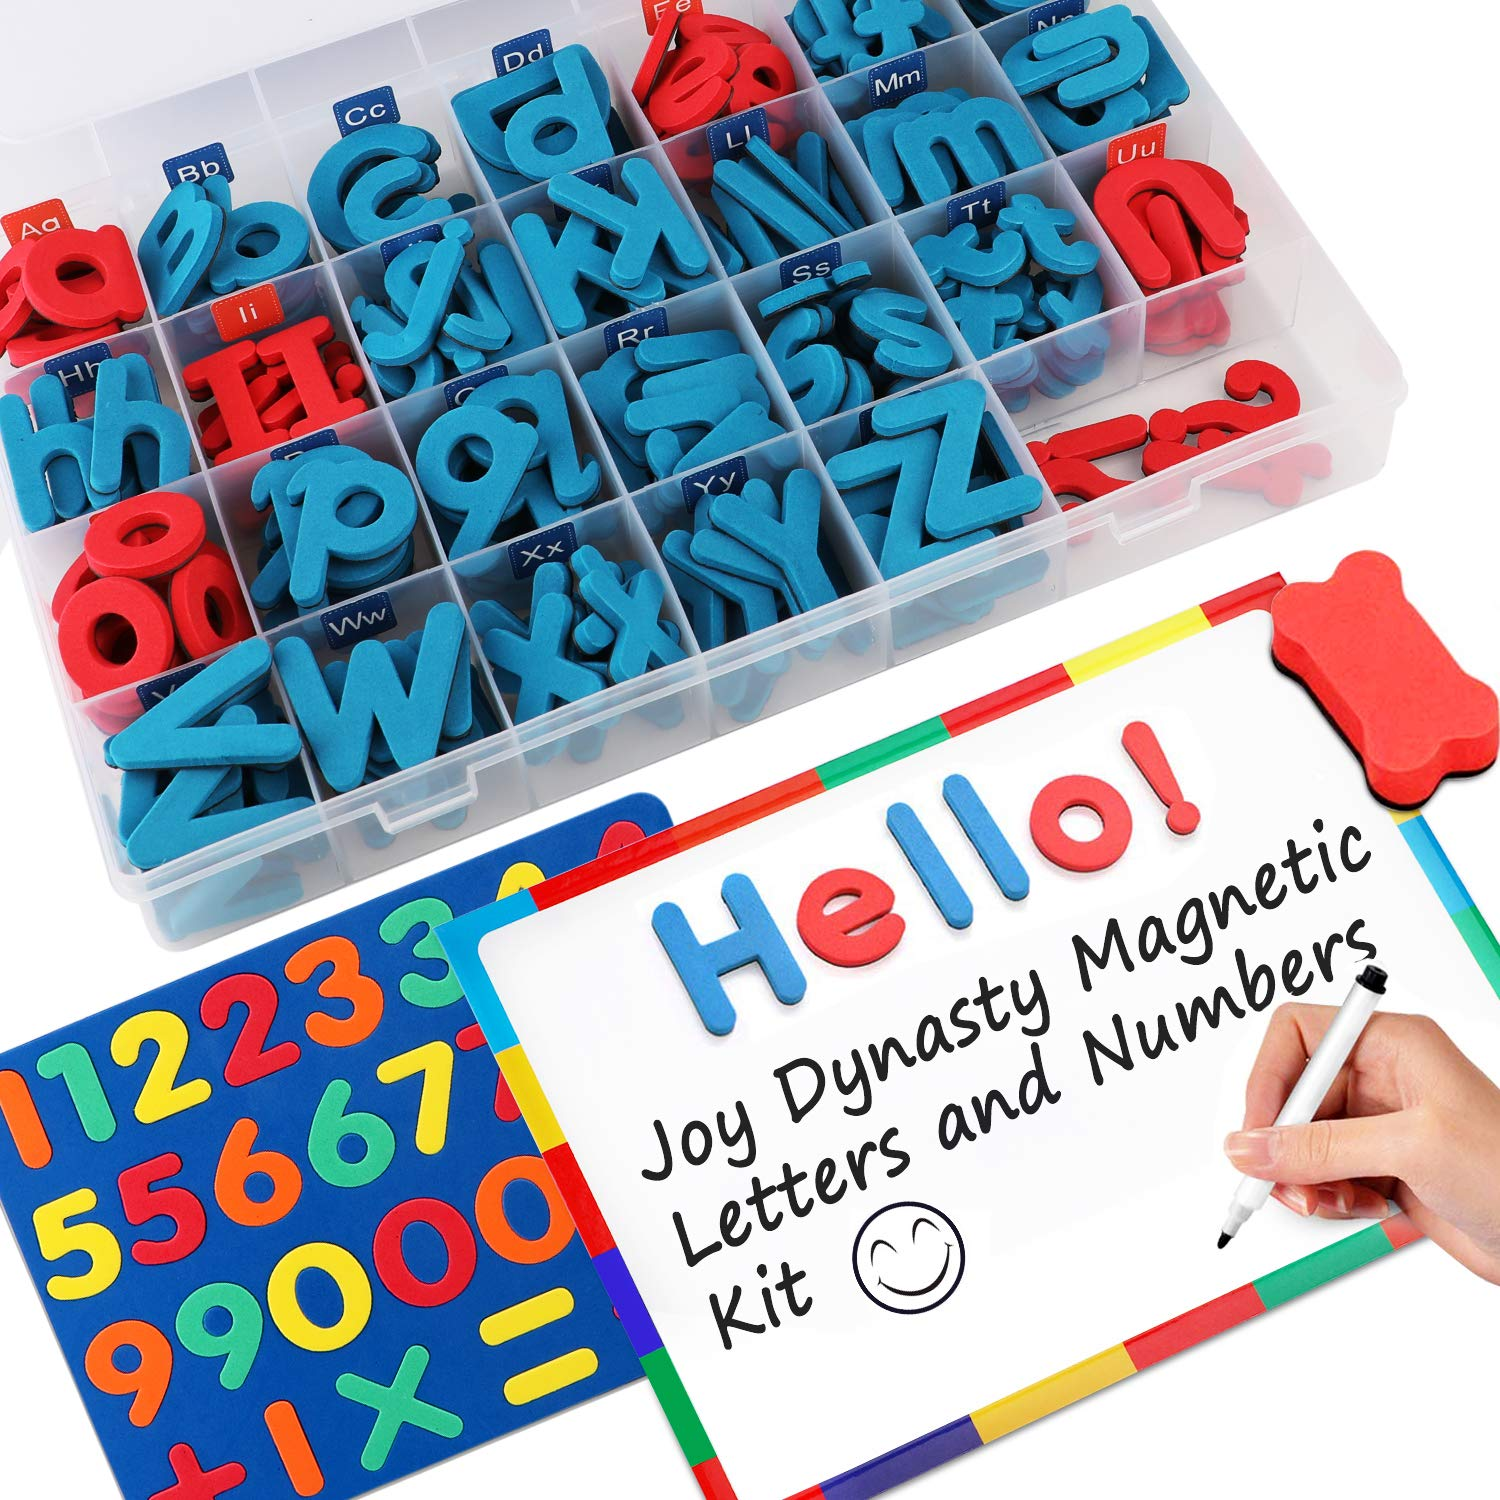 237 Pcs Magnetic Letters und Numbers mit Magnetic Board und Storage Kasten - Uppercase Lowercase Foam Alphabet Letters für Fridge Refrigerator - Abc Magnets für Classroom Kids Learning Spelling